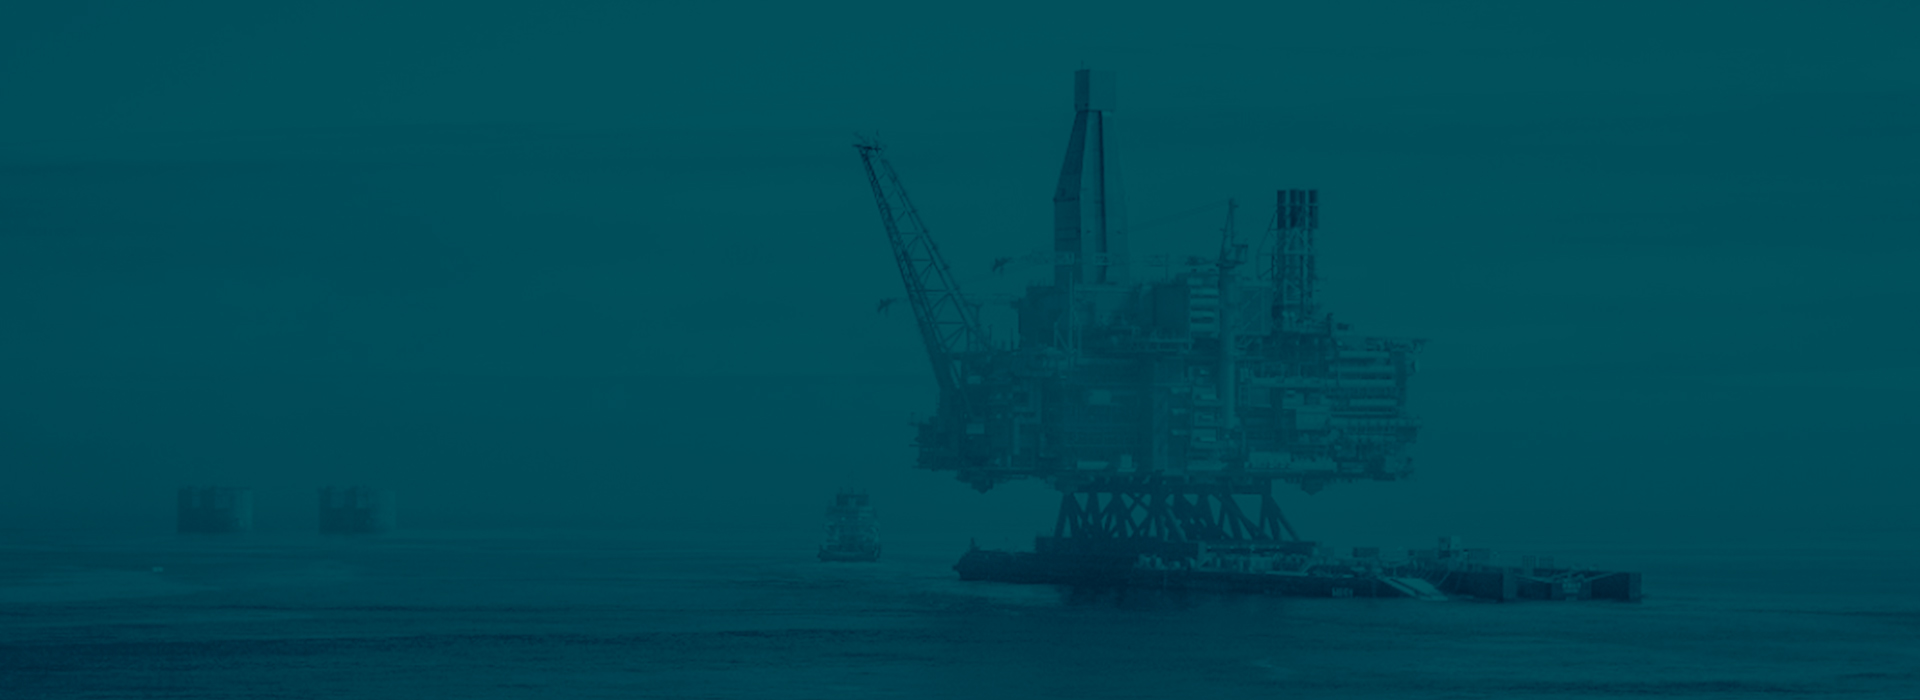 Oil And Gas Industry Banner